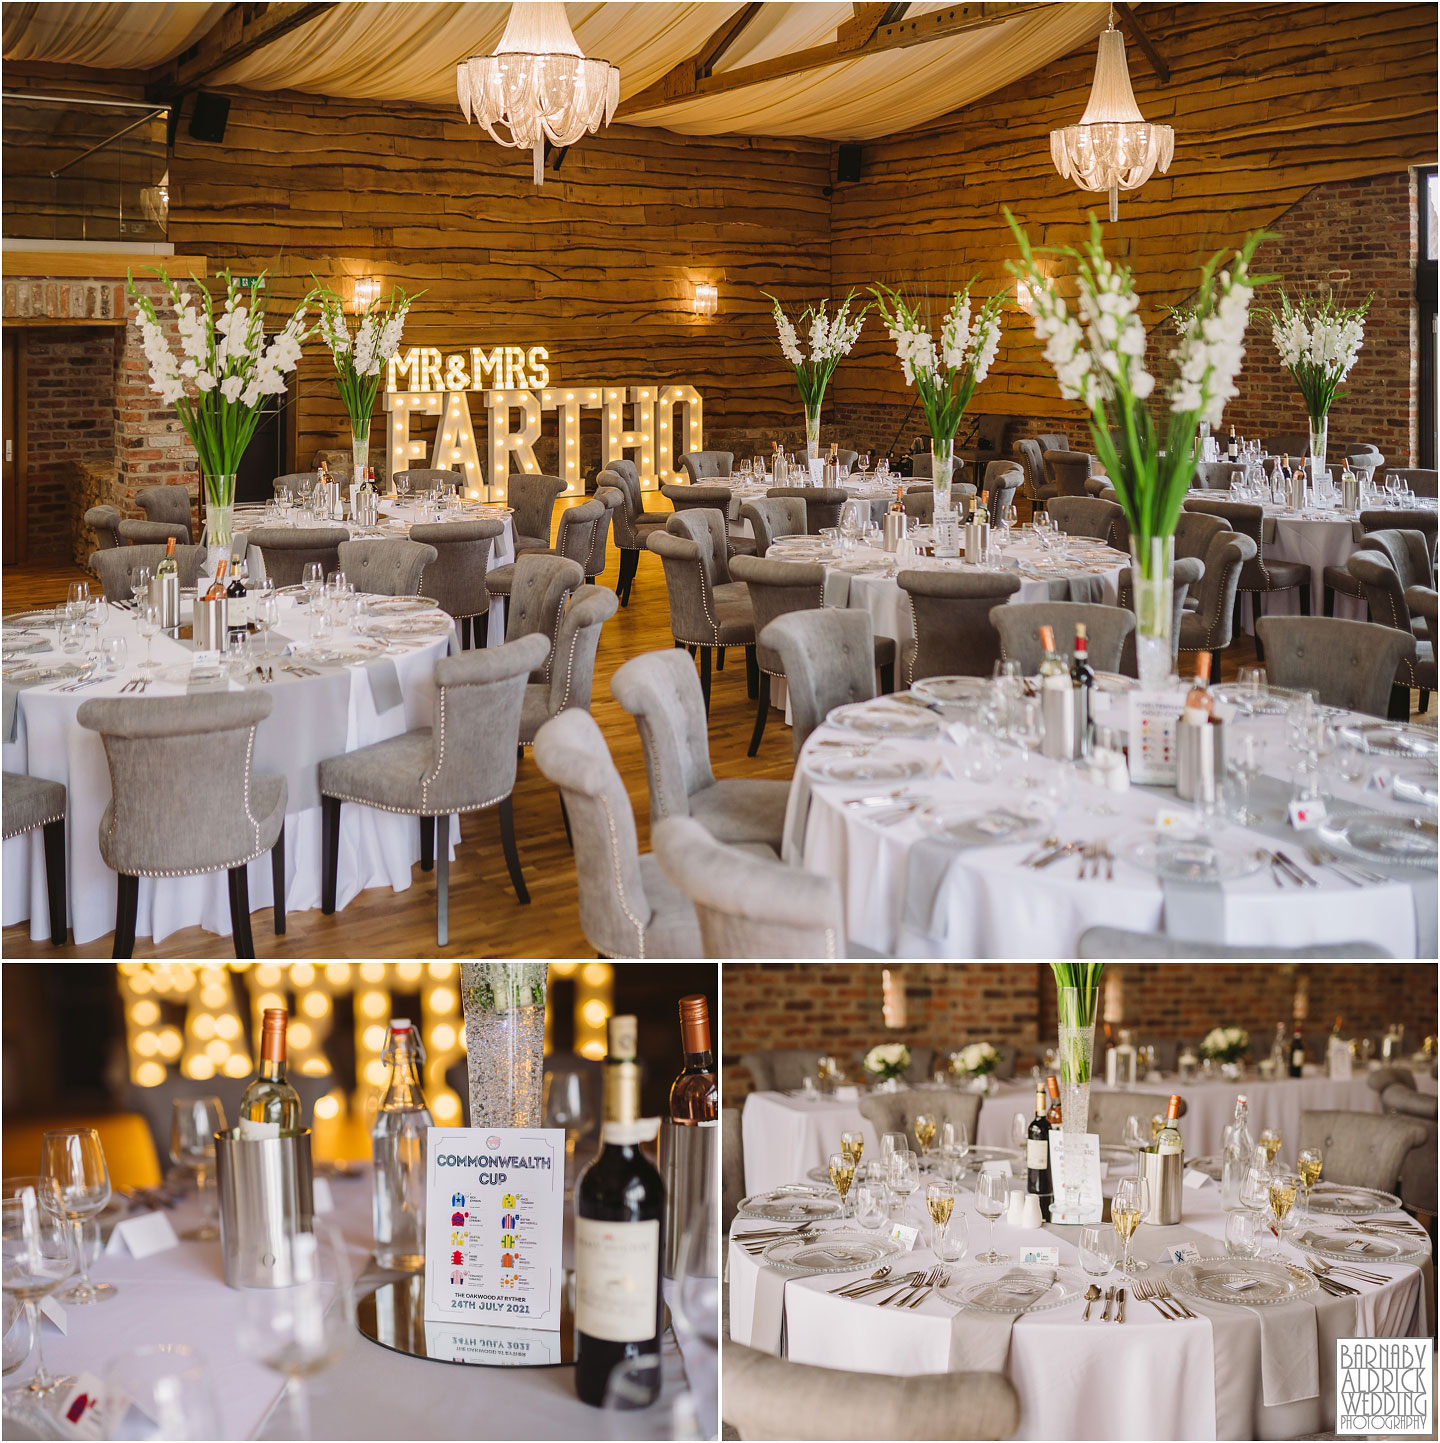 The Grain Store at the Oakwood at Ryther, Wedding breakfast room photo At The Oakwood, Wedding at The Oakwood at Ryther, The Old Grain Store at The Oakwood at RytherOakwood at Ryther wedding photographer, The Oakwood at Ryther wedding photos, Stylish Yorkshire wedding barn venue